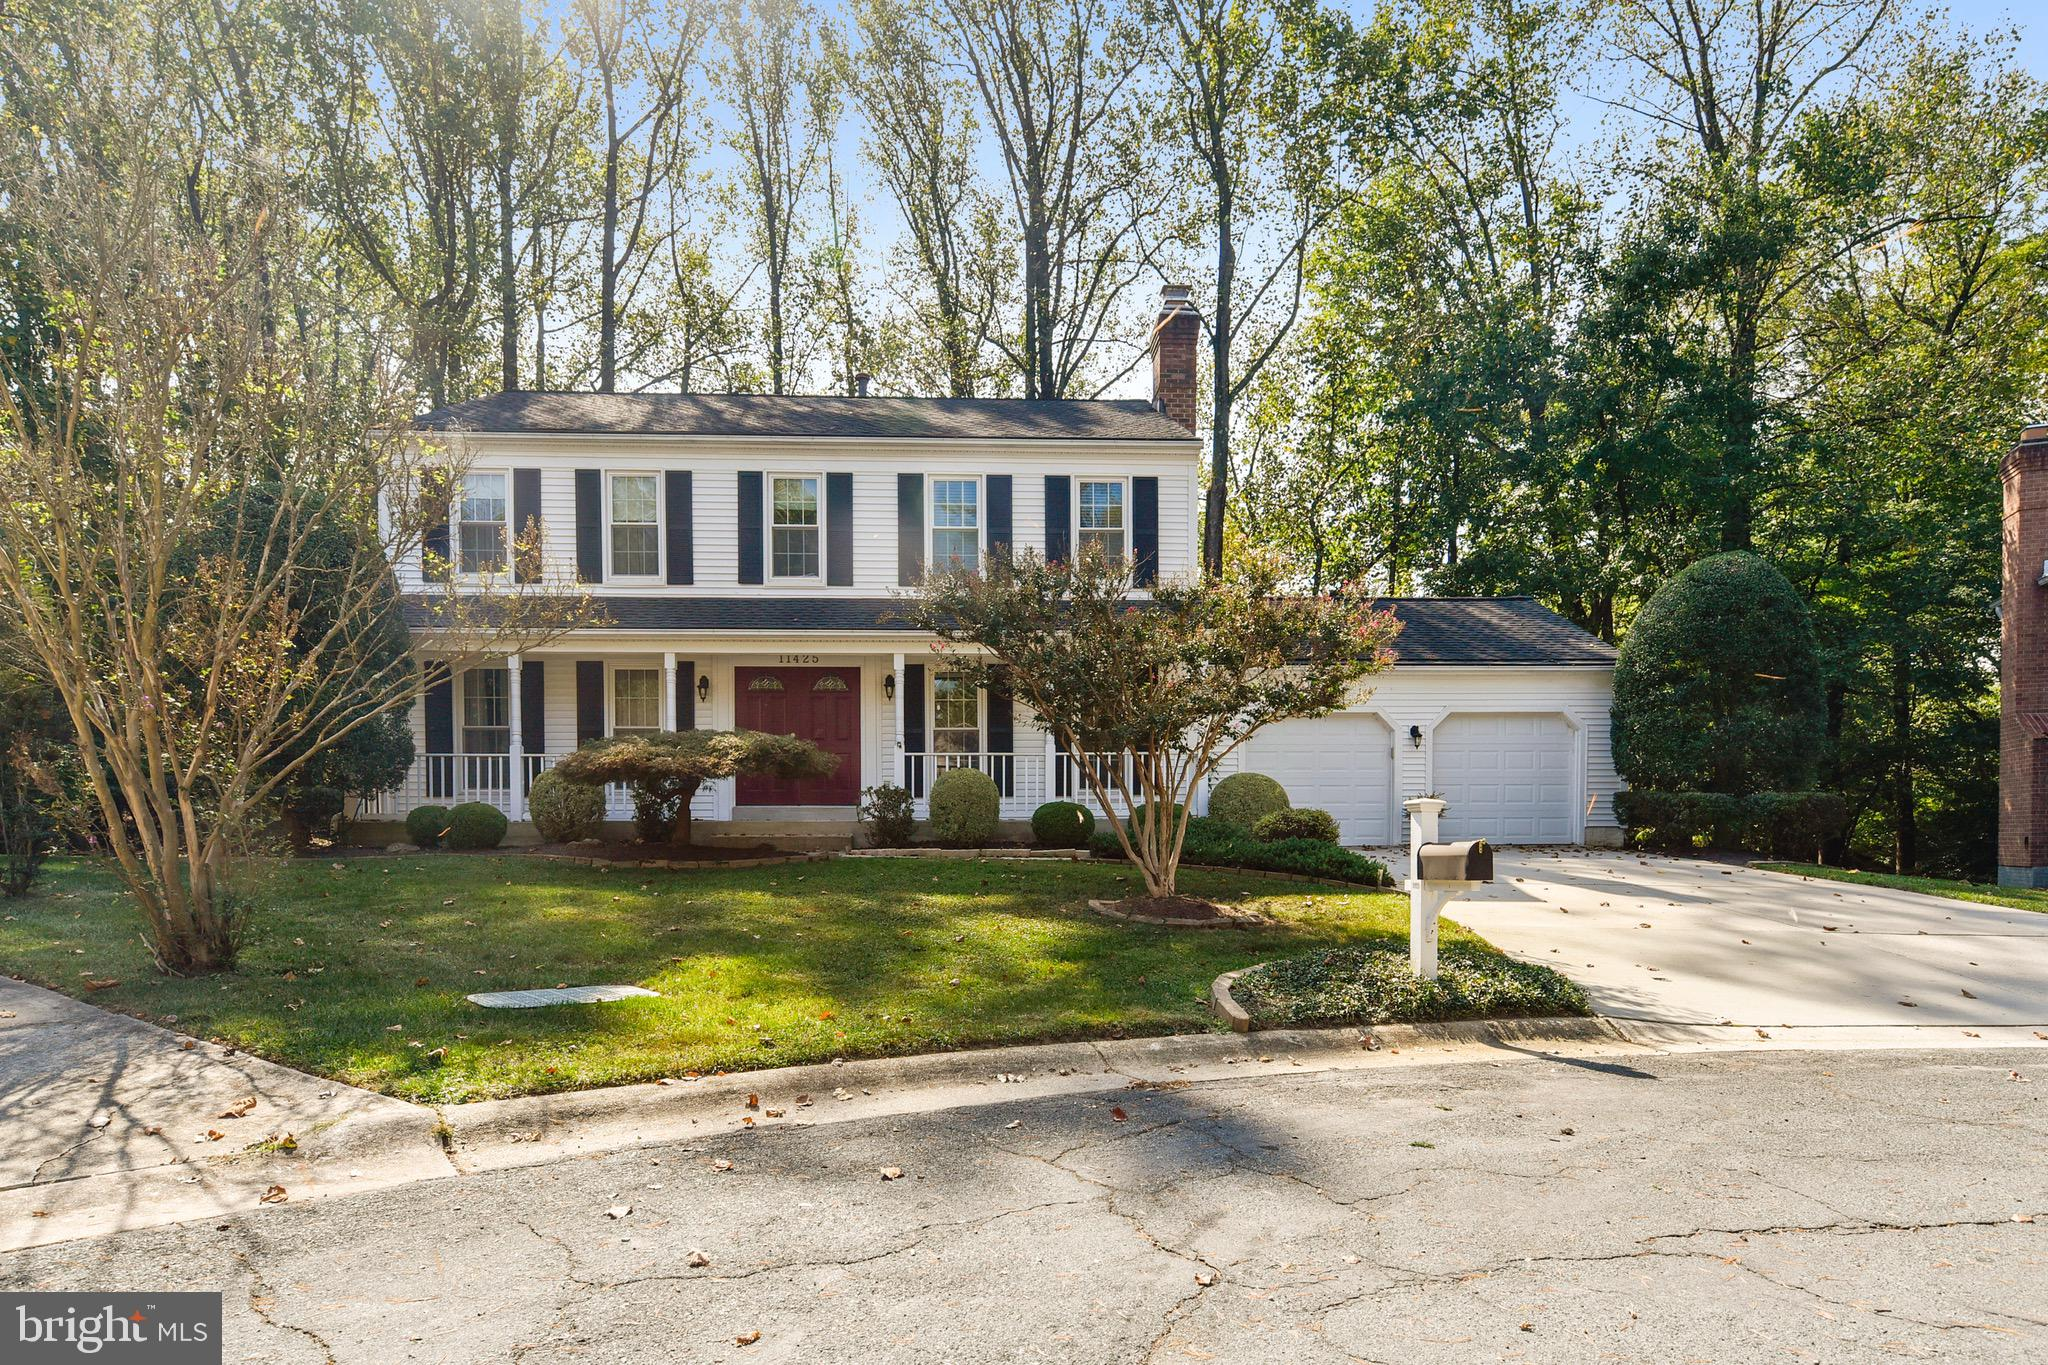 11425 SYMPHONY WOODS LANE, SILVER SPRING, MD 20901